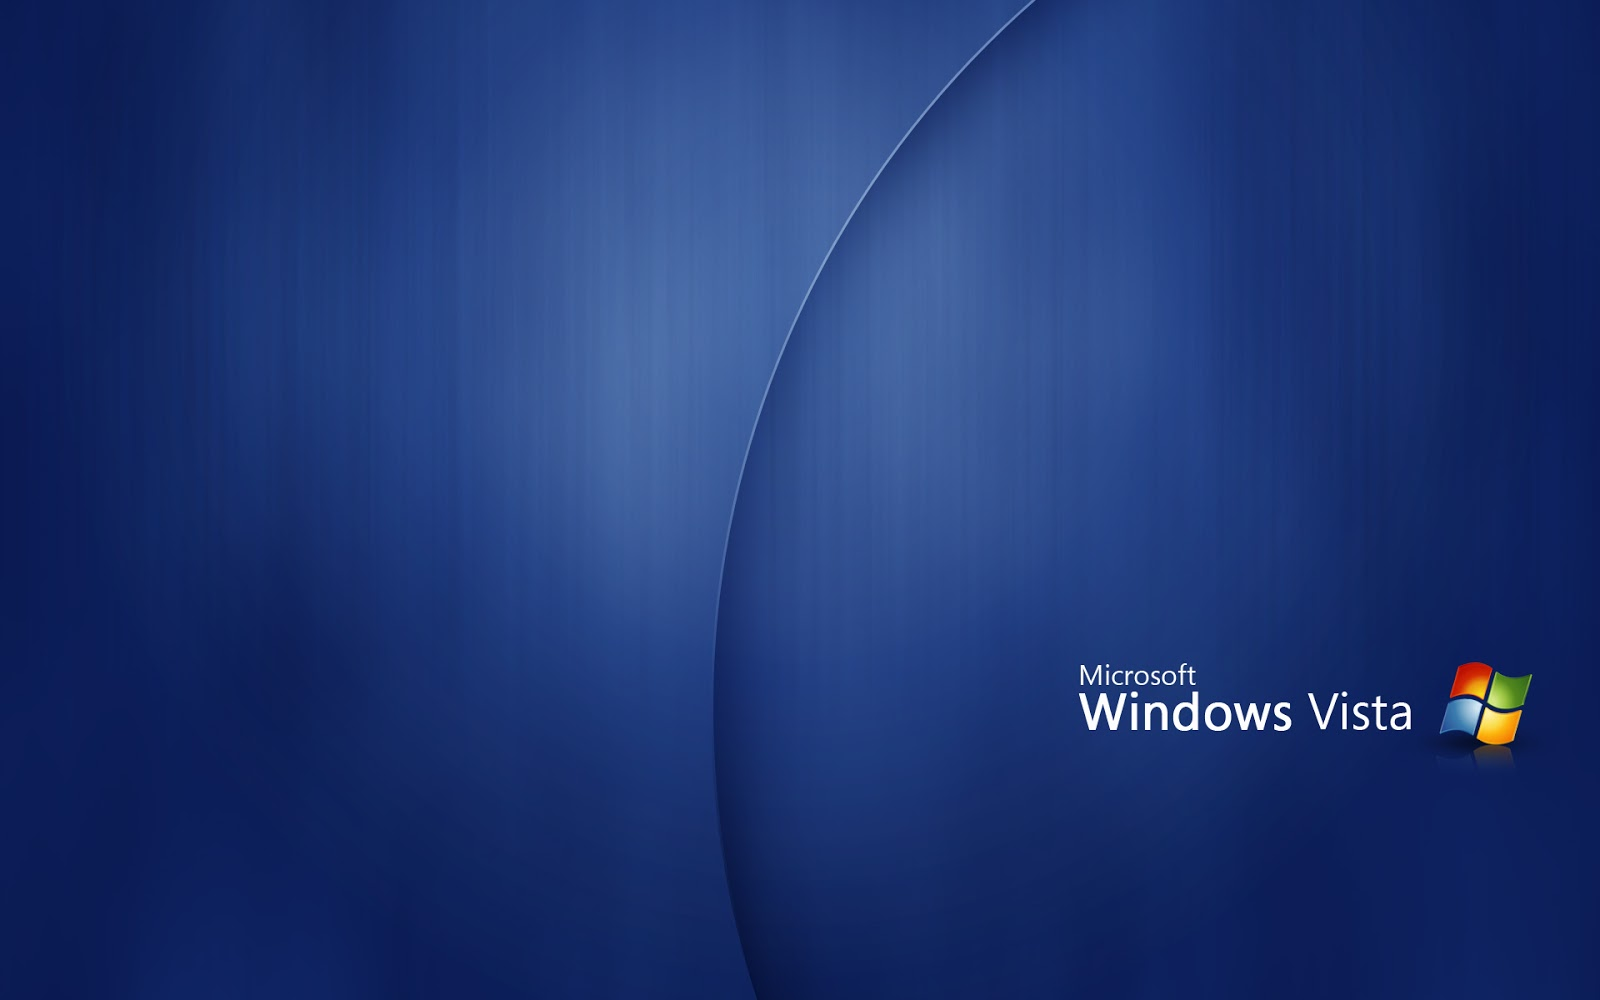 microsoft windows vista operating system hd wallpapers and